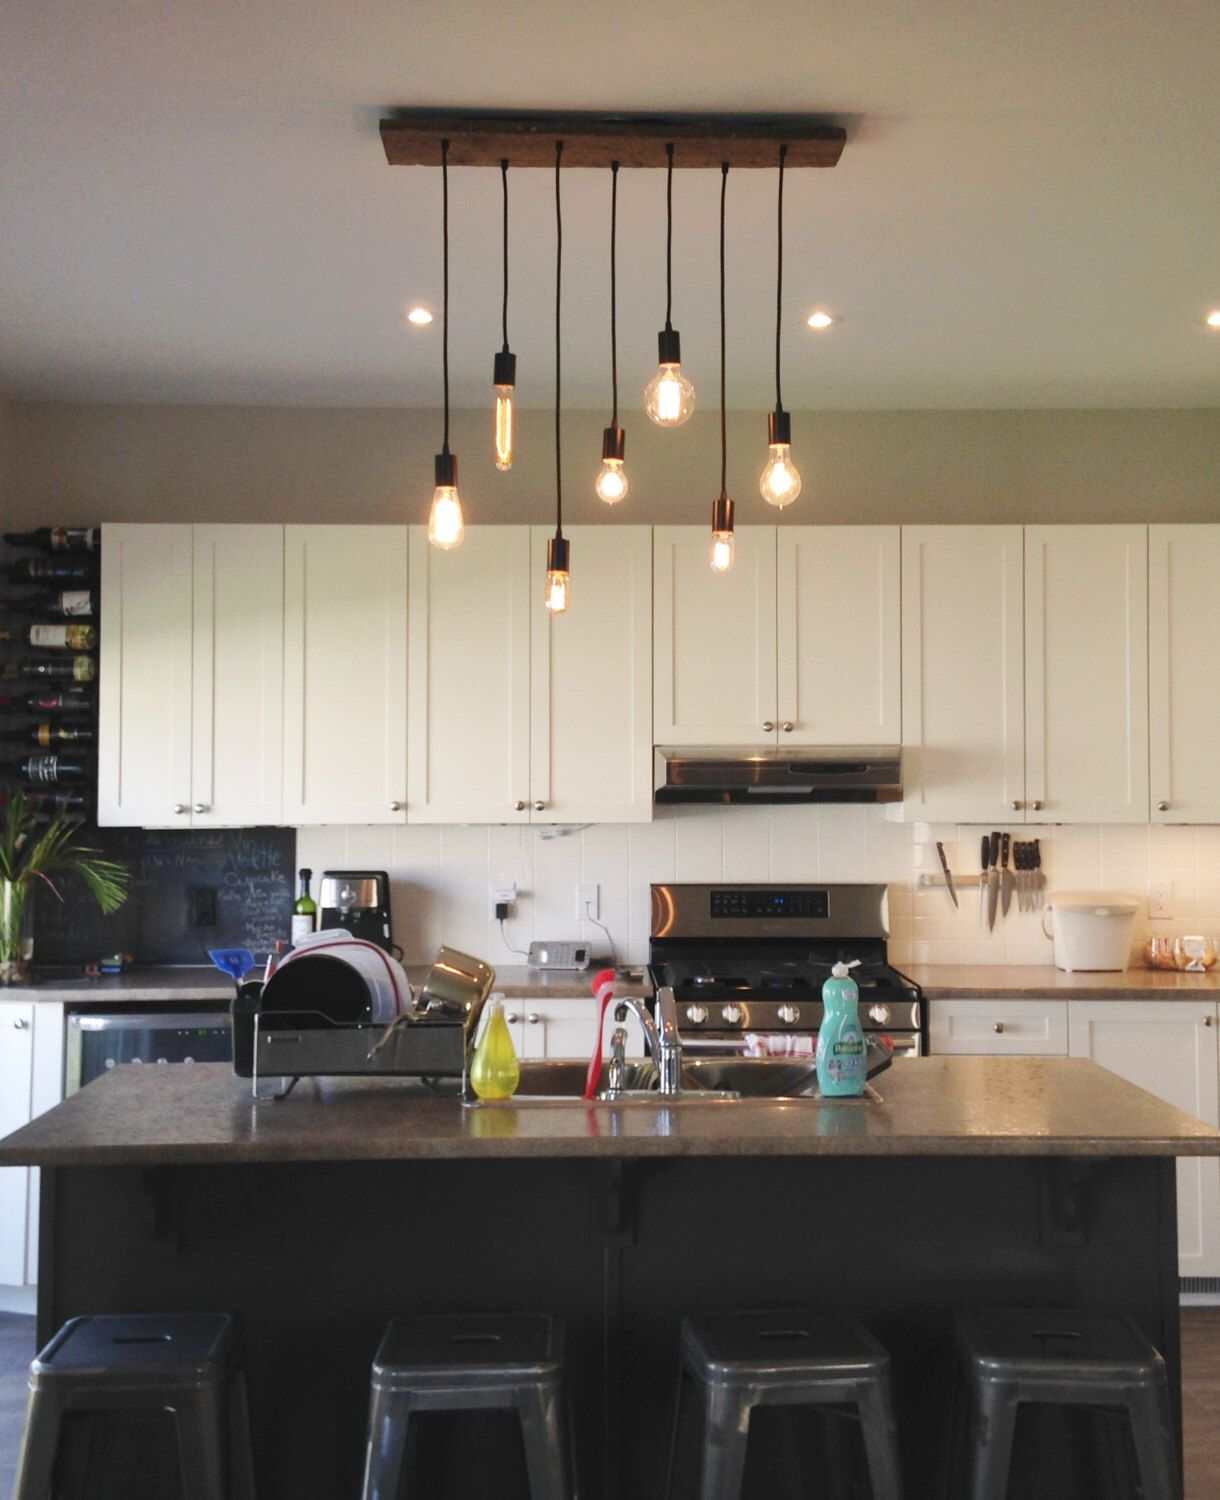 Kitchen Chandelier Ideas Dish Towels Modern Wood With Pendant Lights